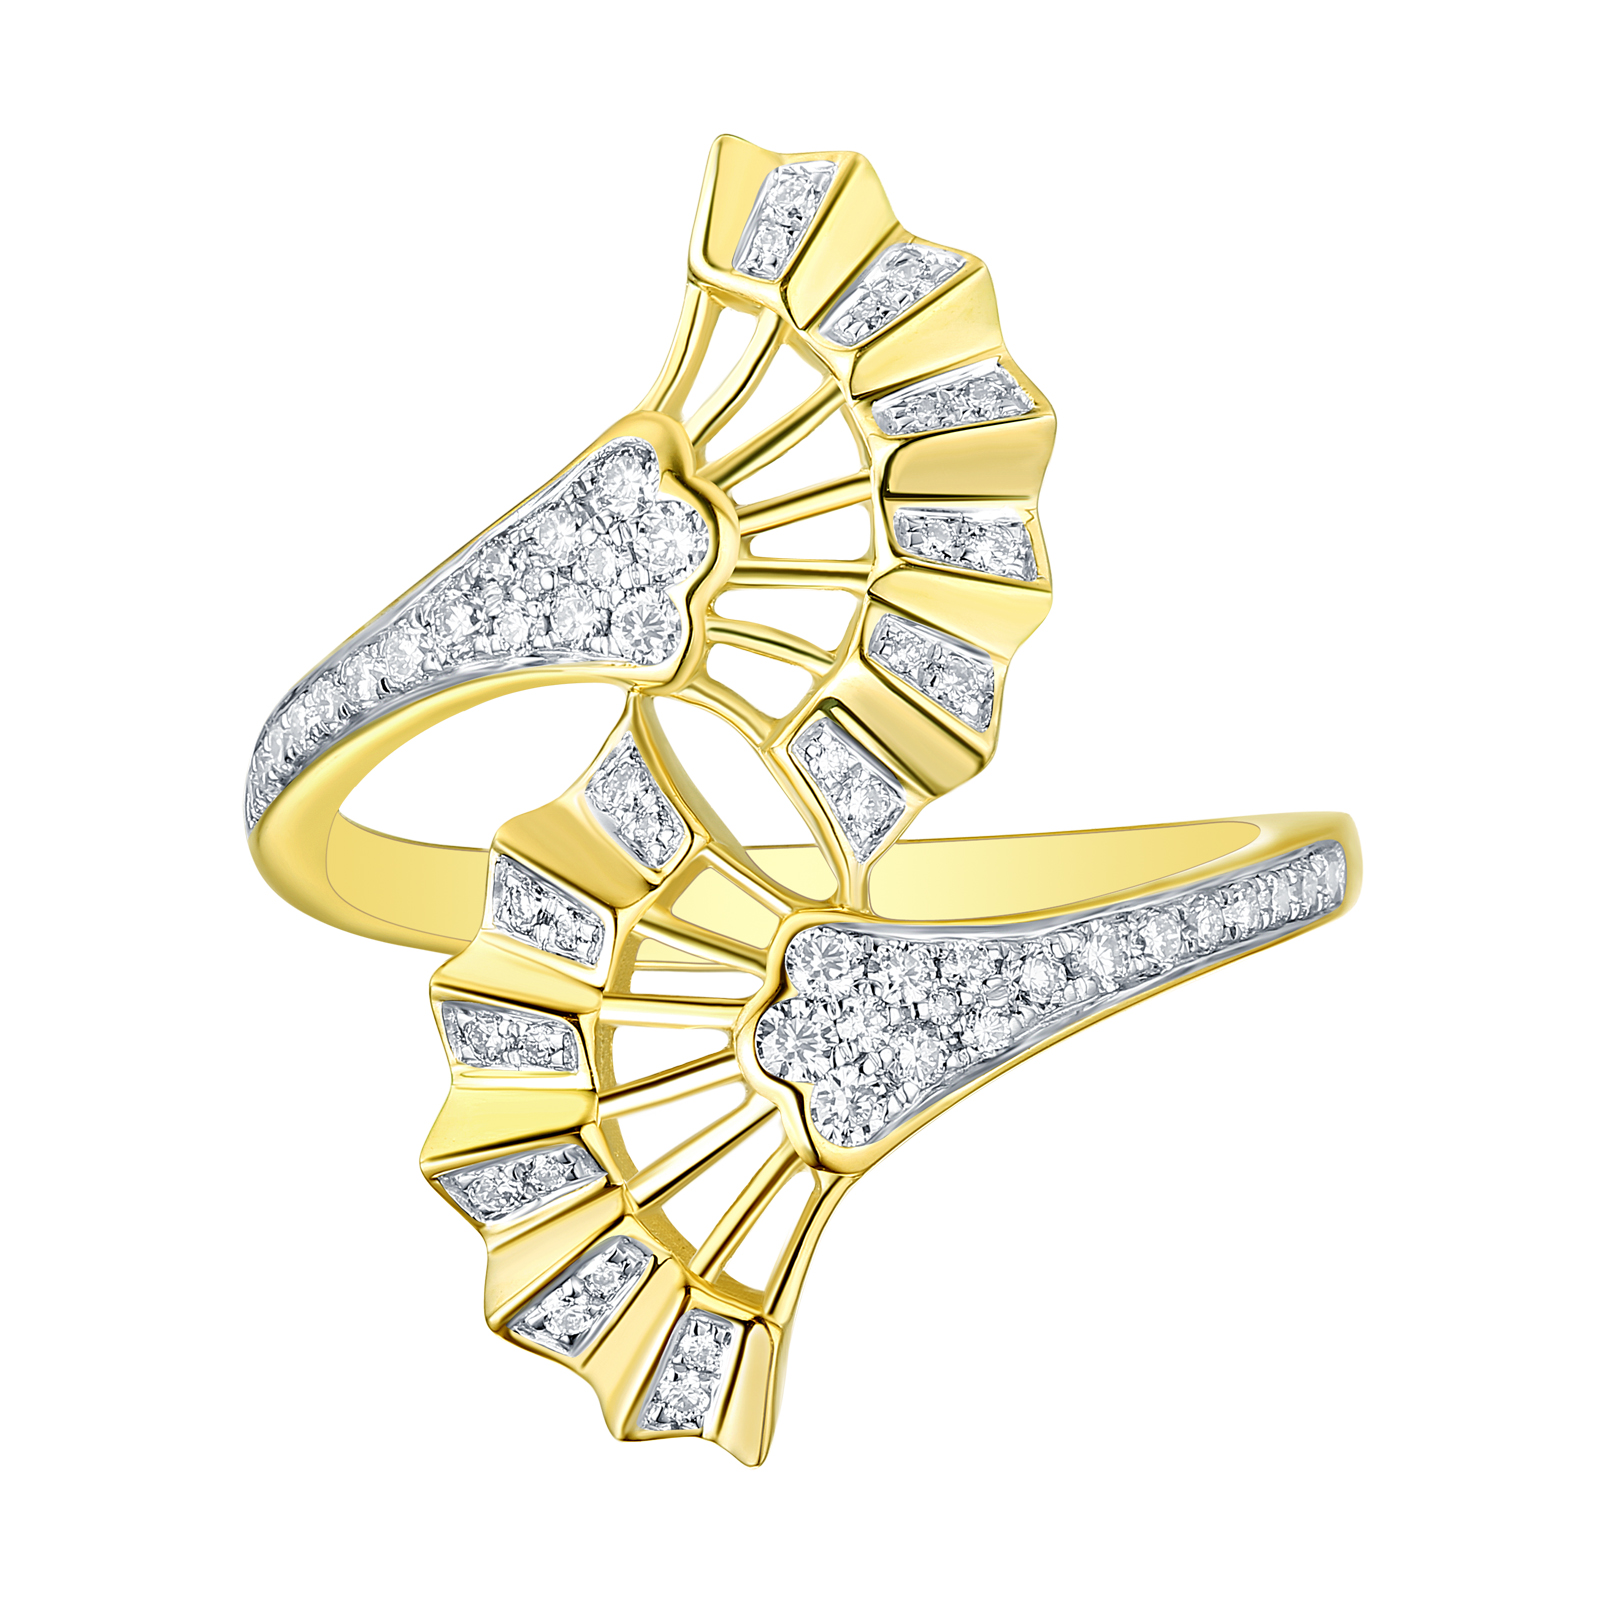 R29925WHT- 14K Yellow Gold Diamond Ring, 3.81 TCW